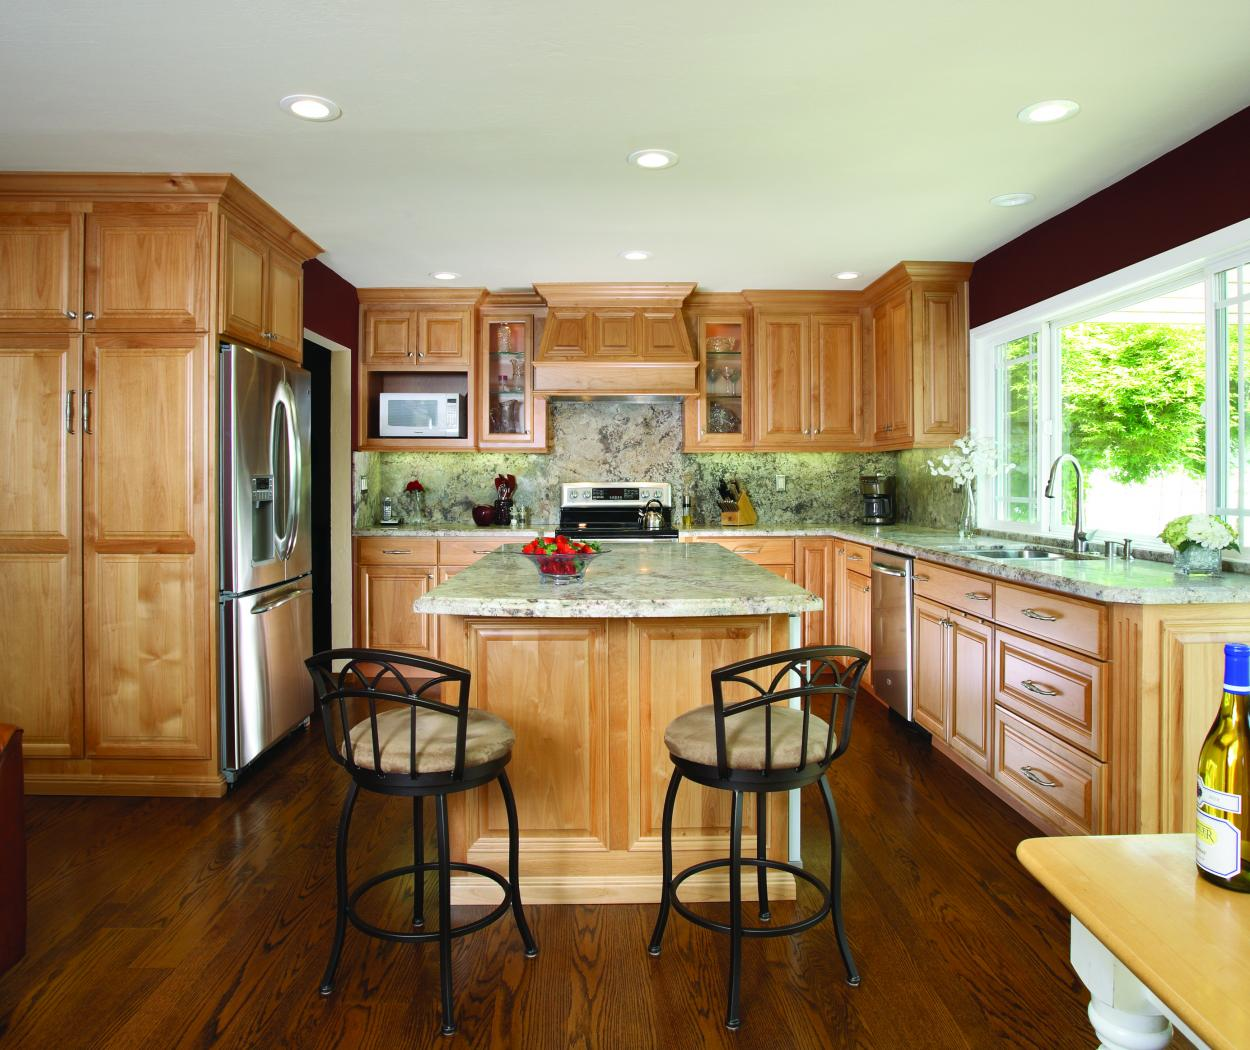 Beautiful Kitchen Built in Alder with Beautiful Granite Counter Tops, Glass Doors and Stainless Steel Appliances